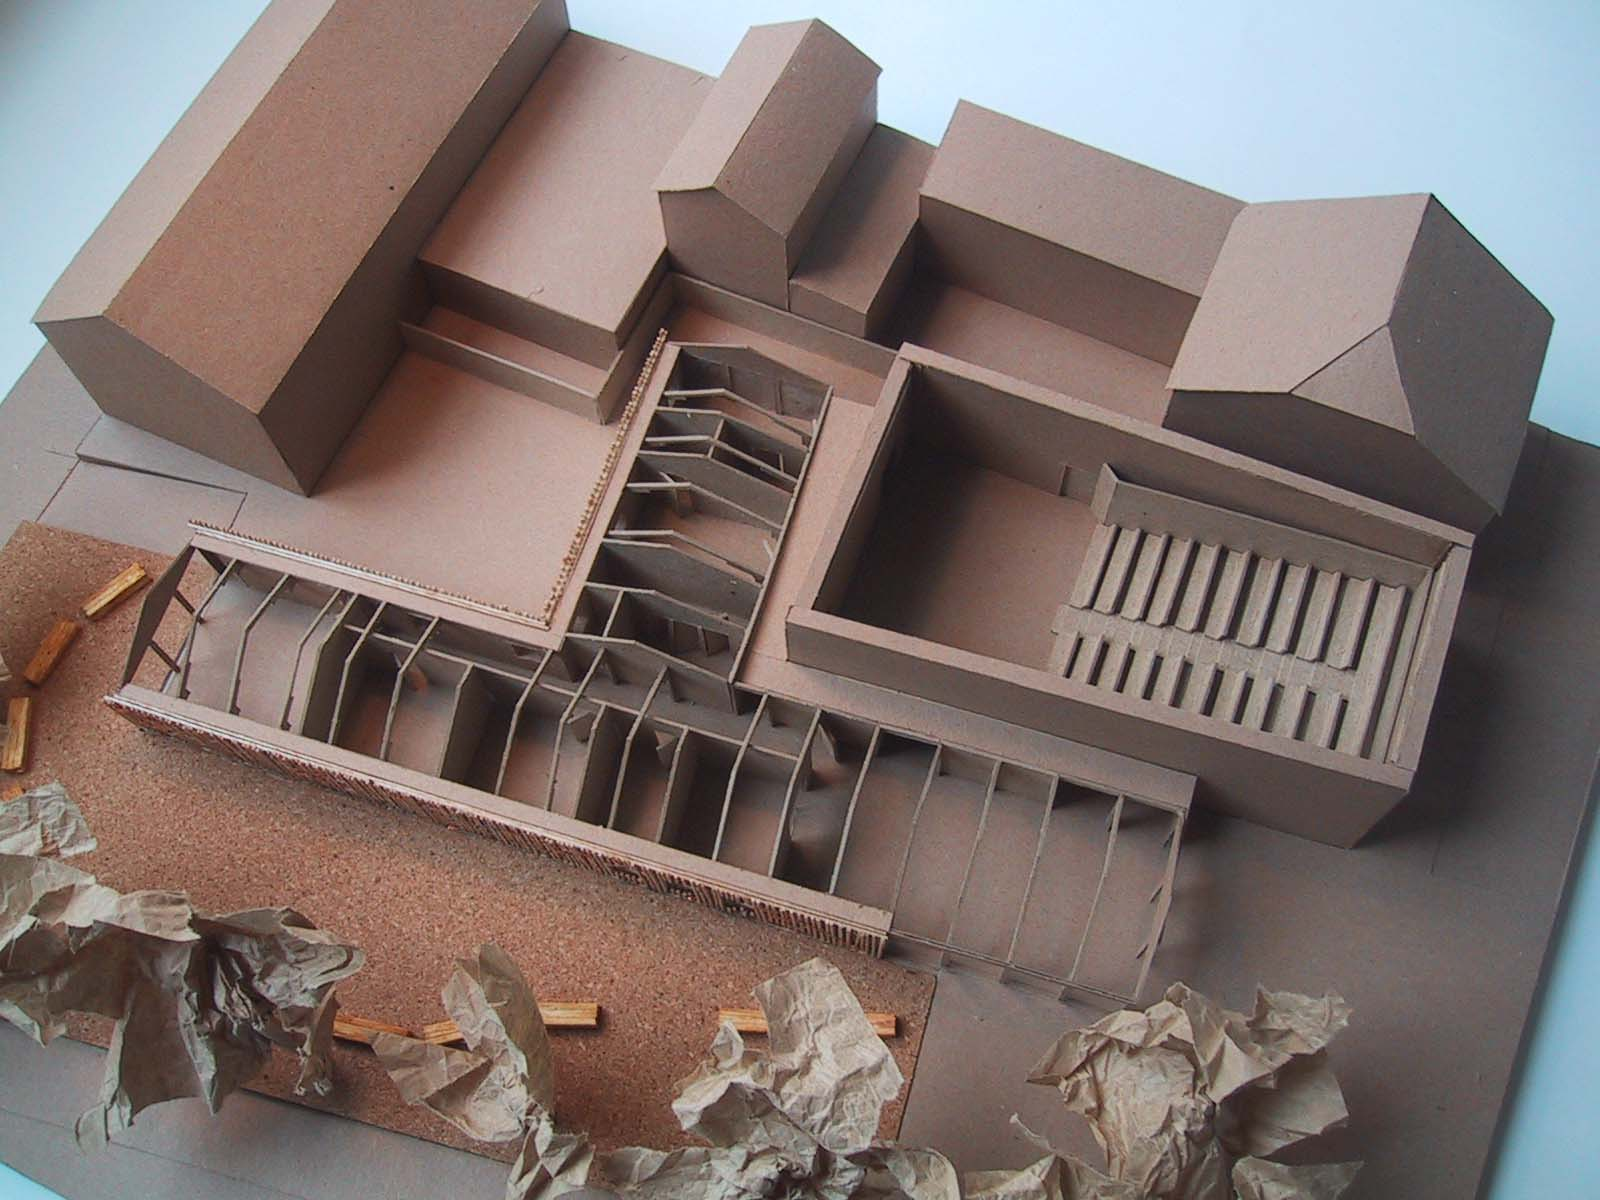 Concept model for Sparkenhoe Theatre by Ash Sakula Architects